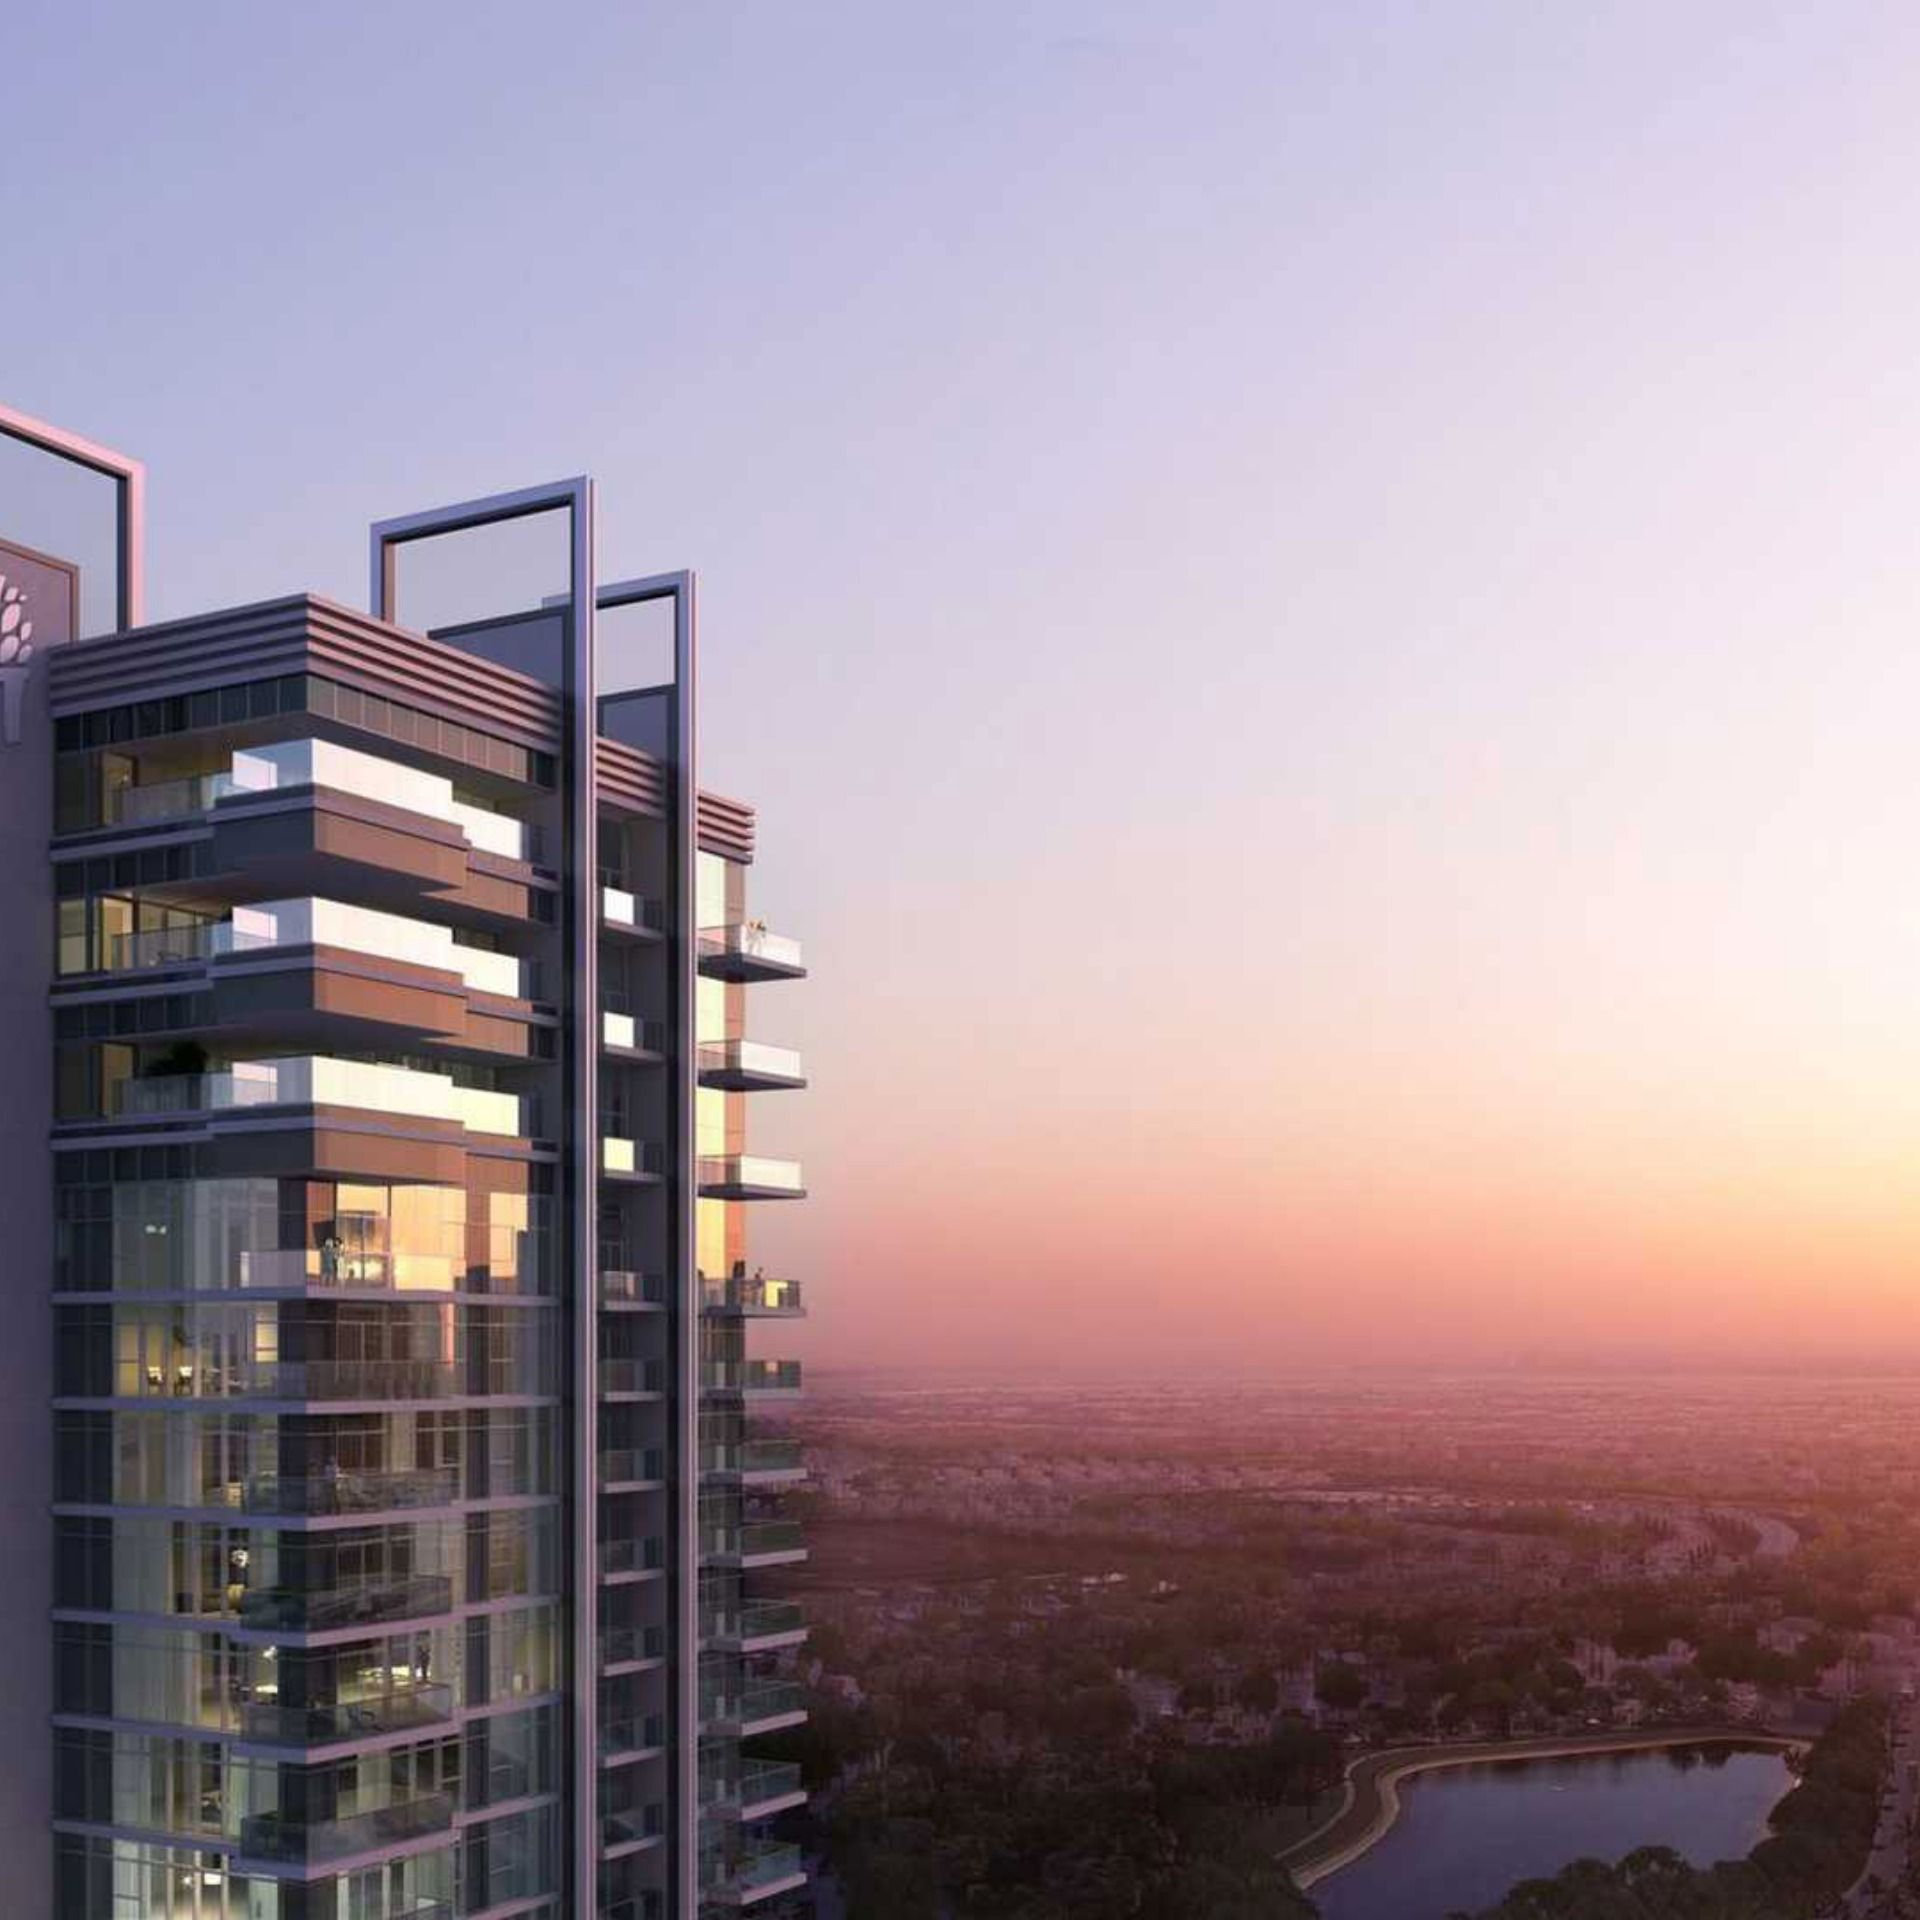 Banyan Tree Apartments: With Its Avant-garde Design, State-of-the-art Facilities